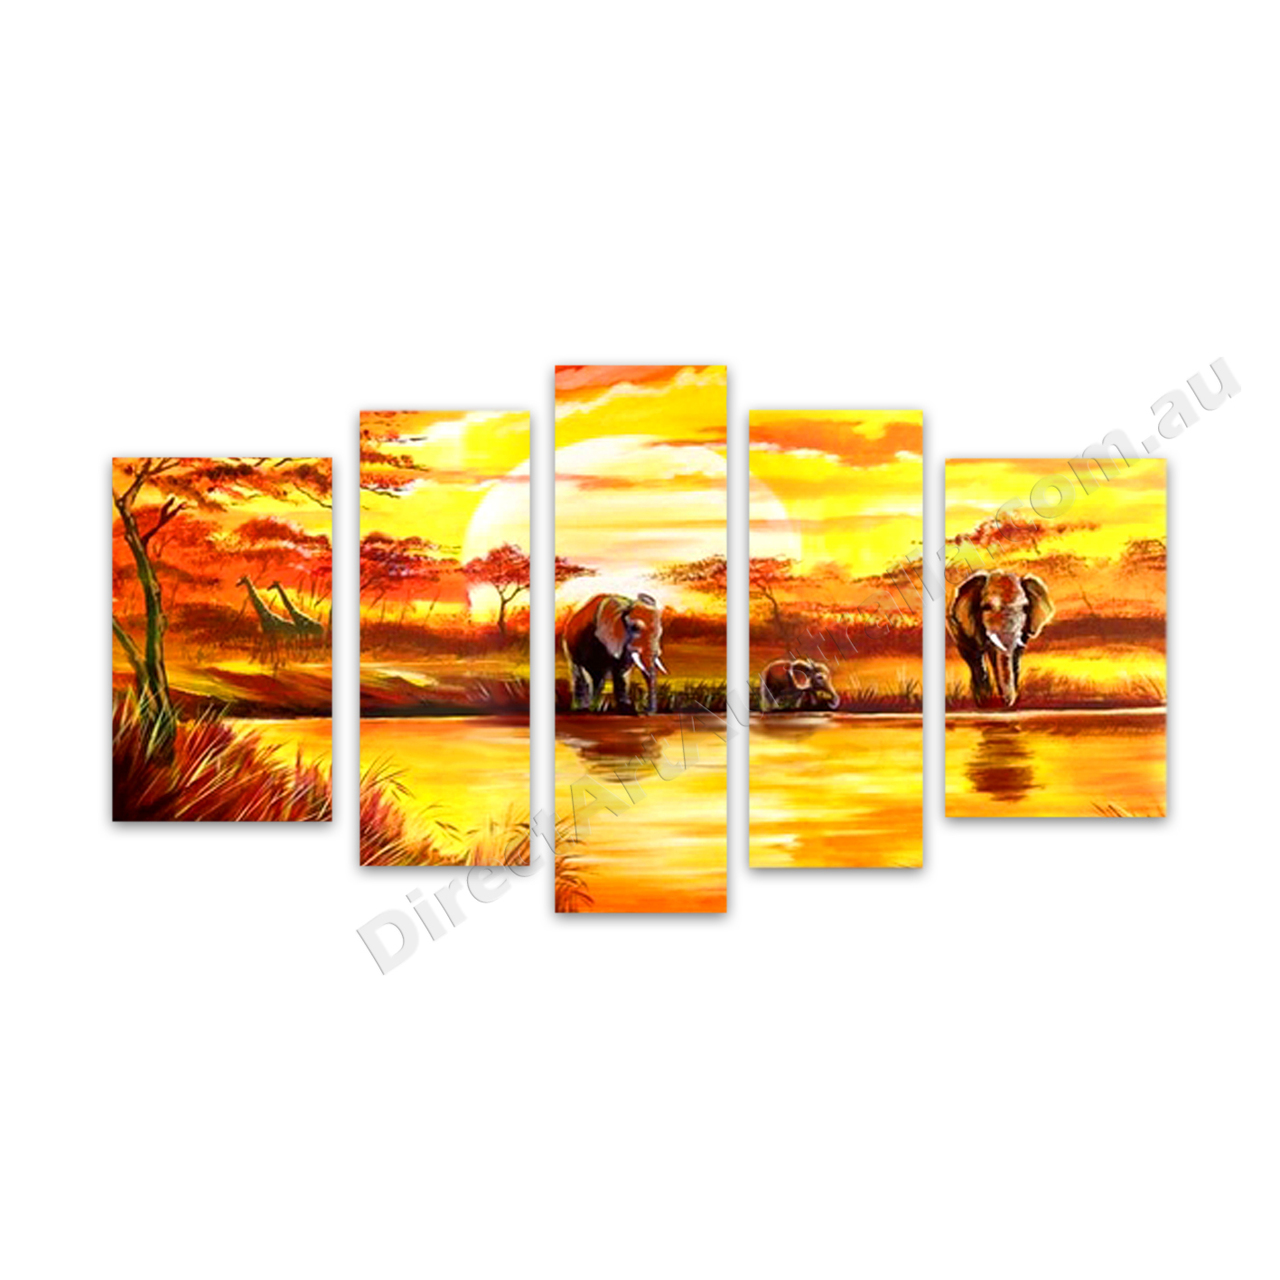 African Elephants Canvas Oil Painting for the Budget Perth